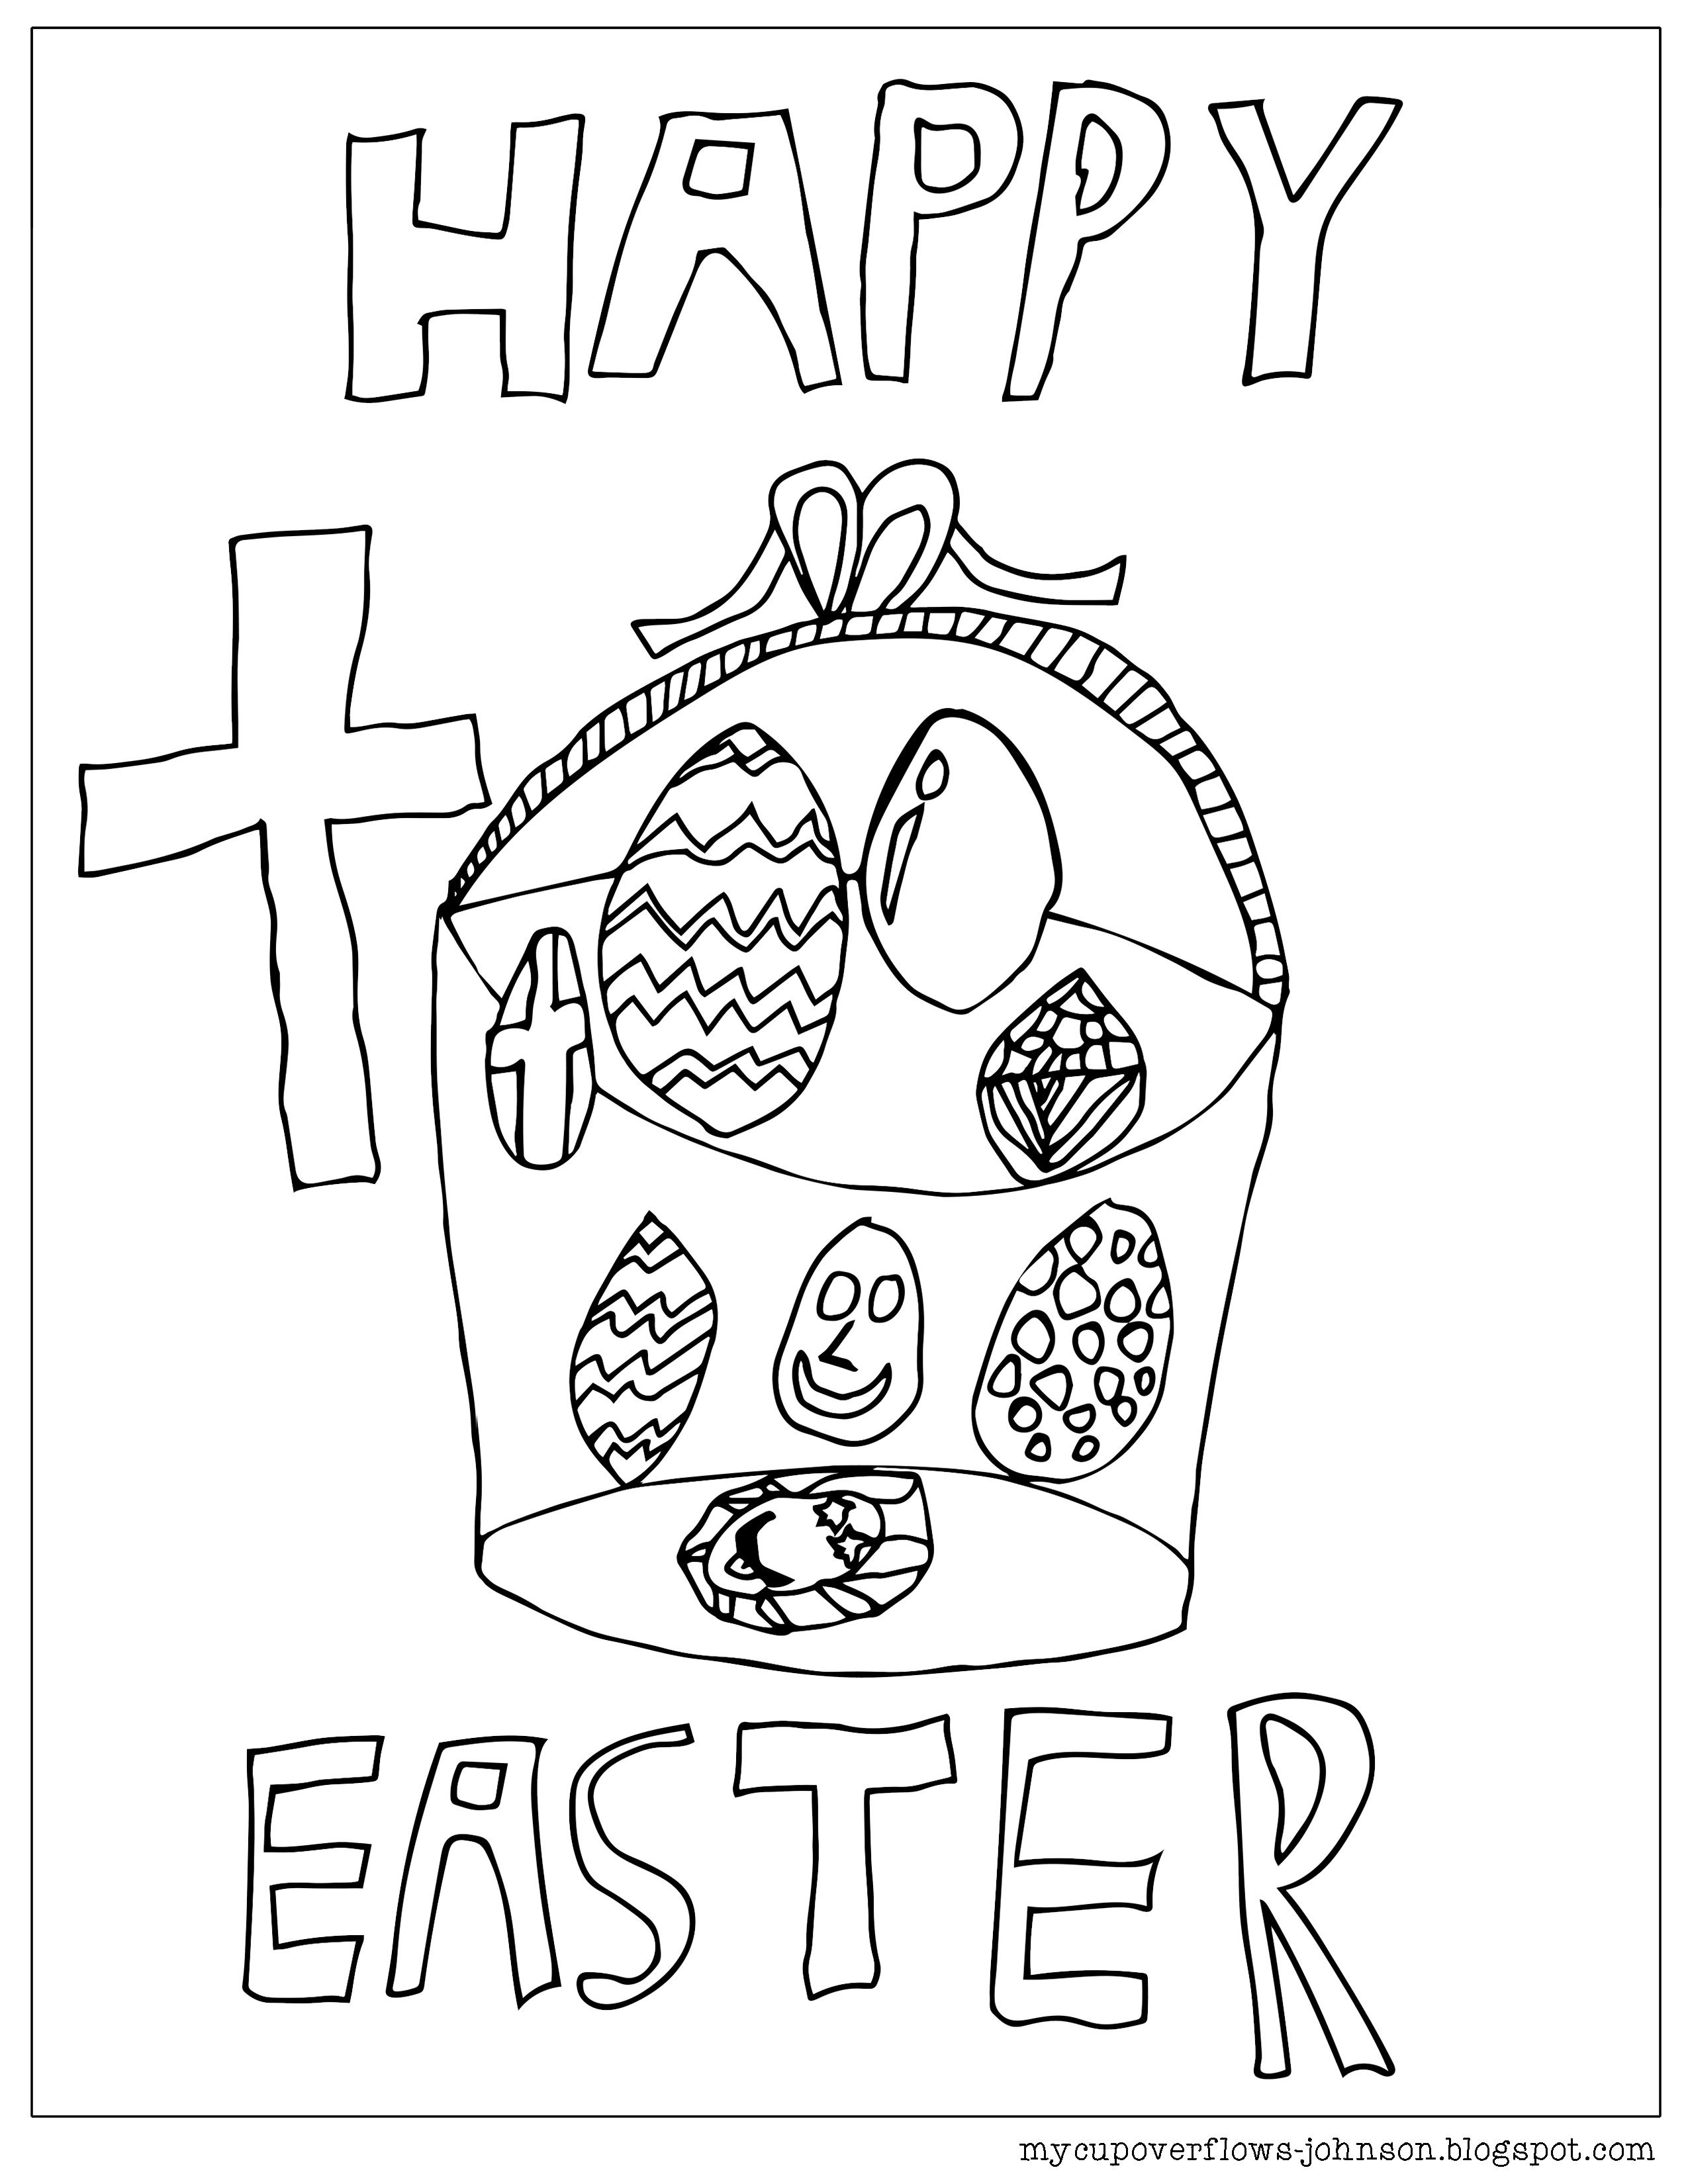 Happy Easter In 2020 Easter Coloring Pages Easter Colouring Coloring Pages